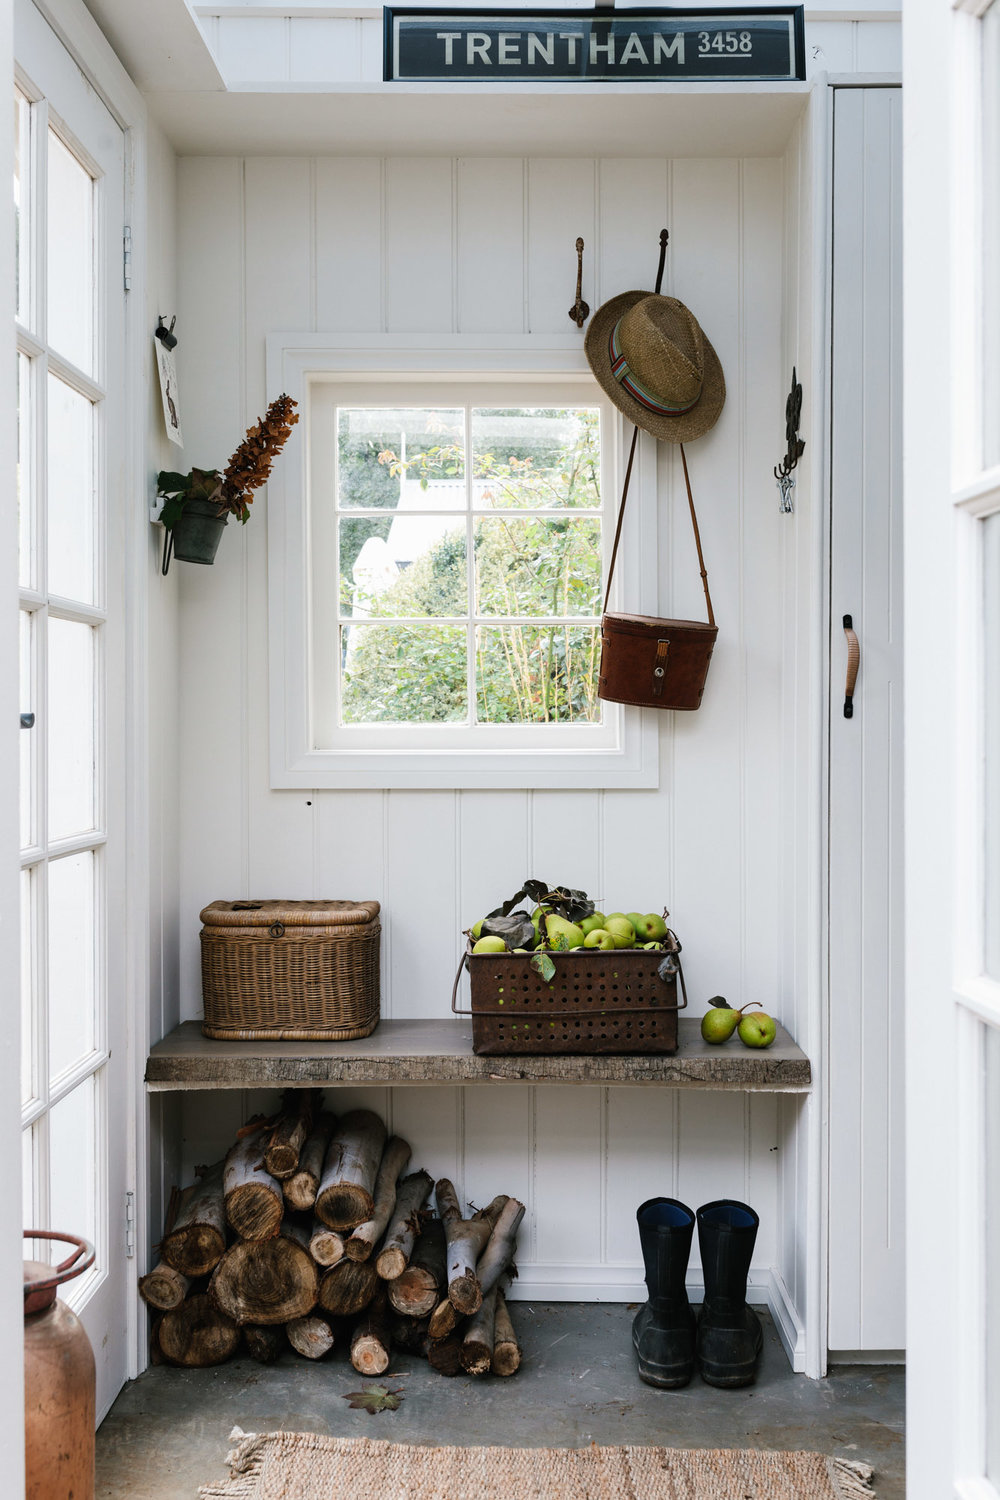 Mudroom at Acre of Roses, Trentham - a sustainable flower farm and luxury country accommodation. Photography by Marnie Hawson, Melbourne purpose-driven photographer and styled by Belle Hemming.